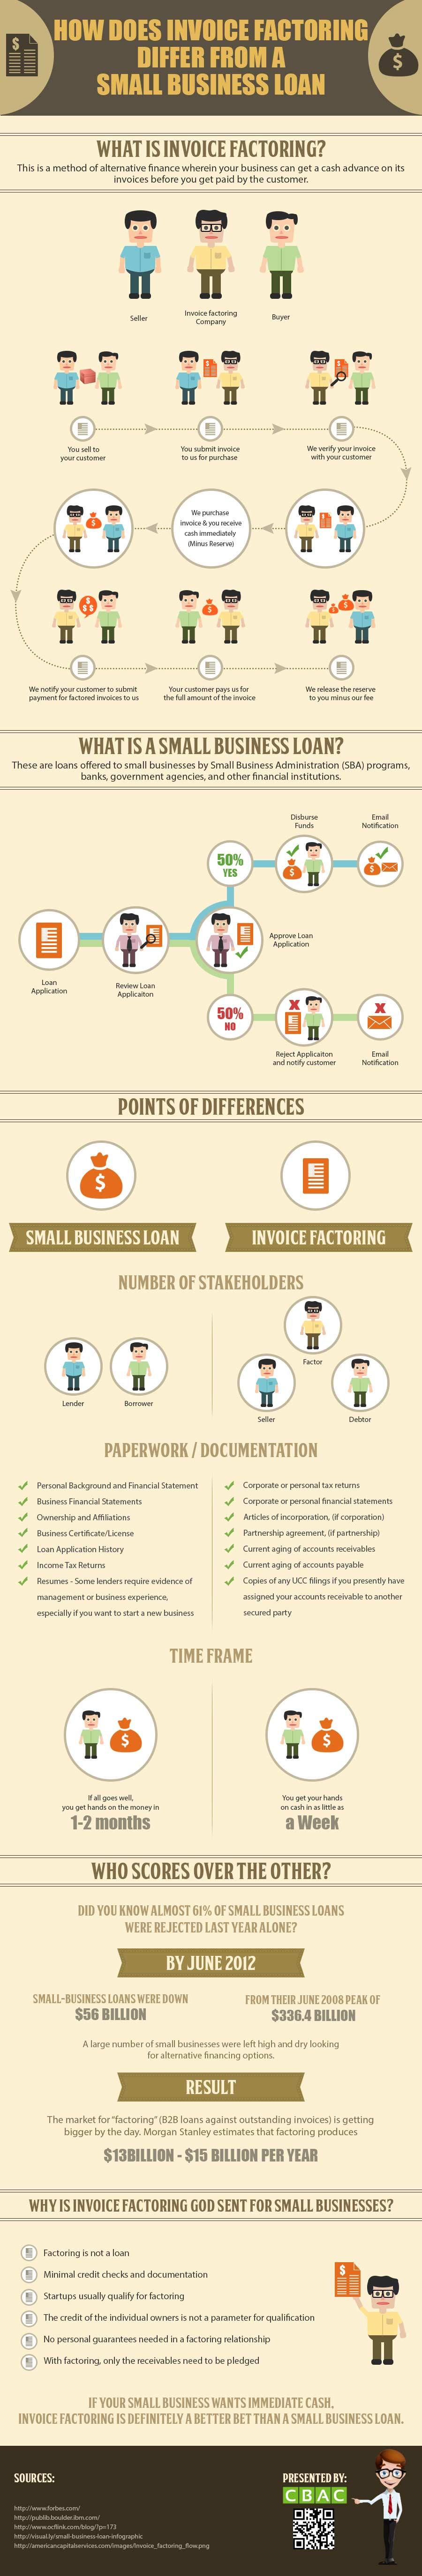 Invoice Factoring Vs Small Business Loan Infographic